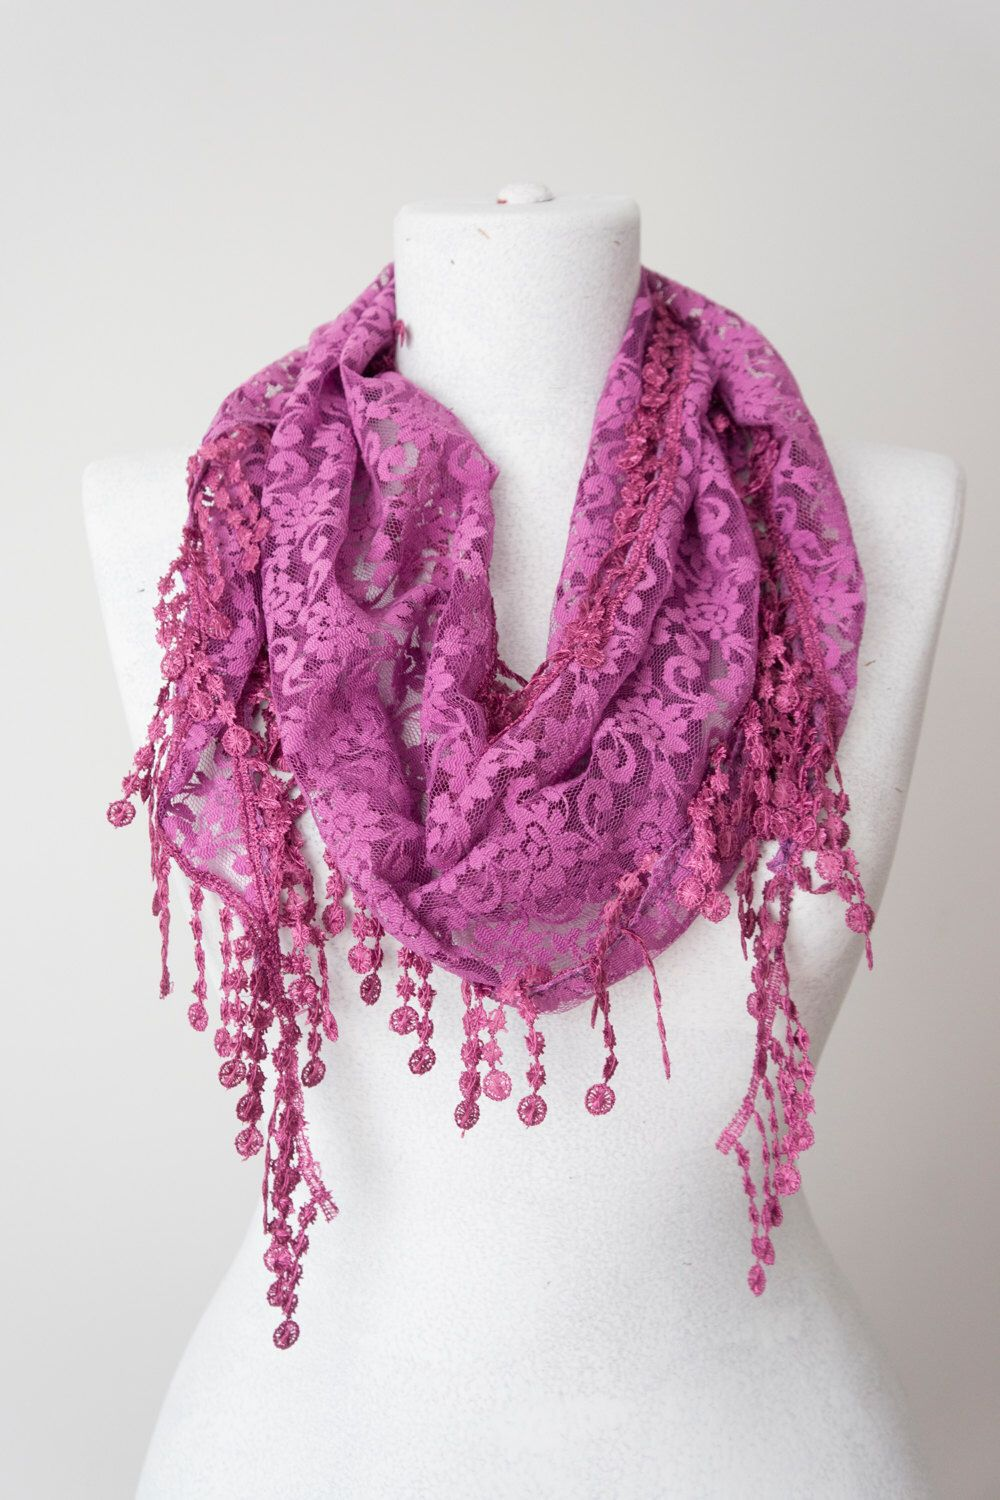 Lace Scarf Lilac Scarf Lace Fringe Scarf Triangle Scarf Fringe Shawl Lace Headband Fashion Accessory Summer Scarf Mother's Day Gifts by Oxoo on Etsy https://www.etsy.com/listing/228728738/lace-scarf-lilac-scarf-lace-fringe-scarf